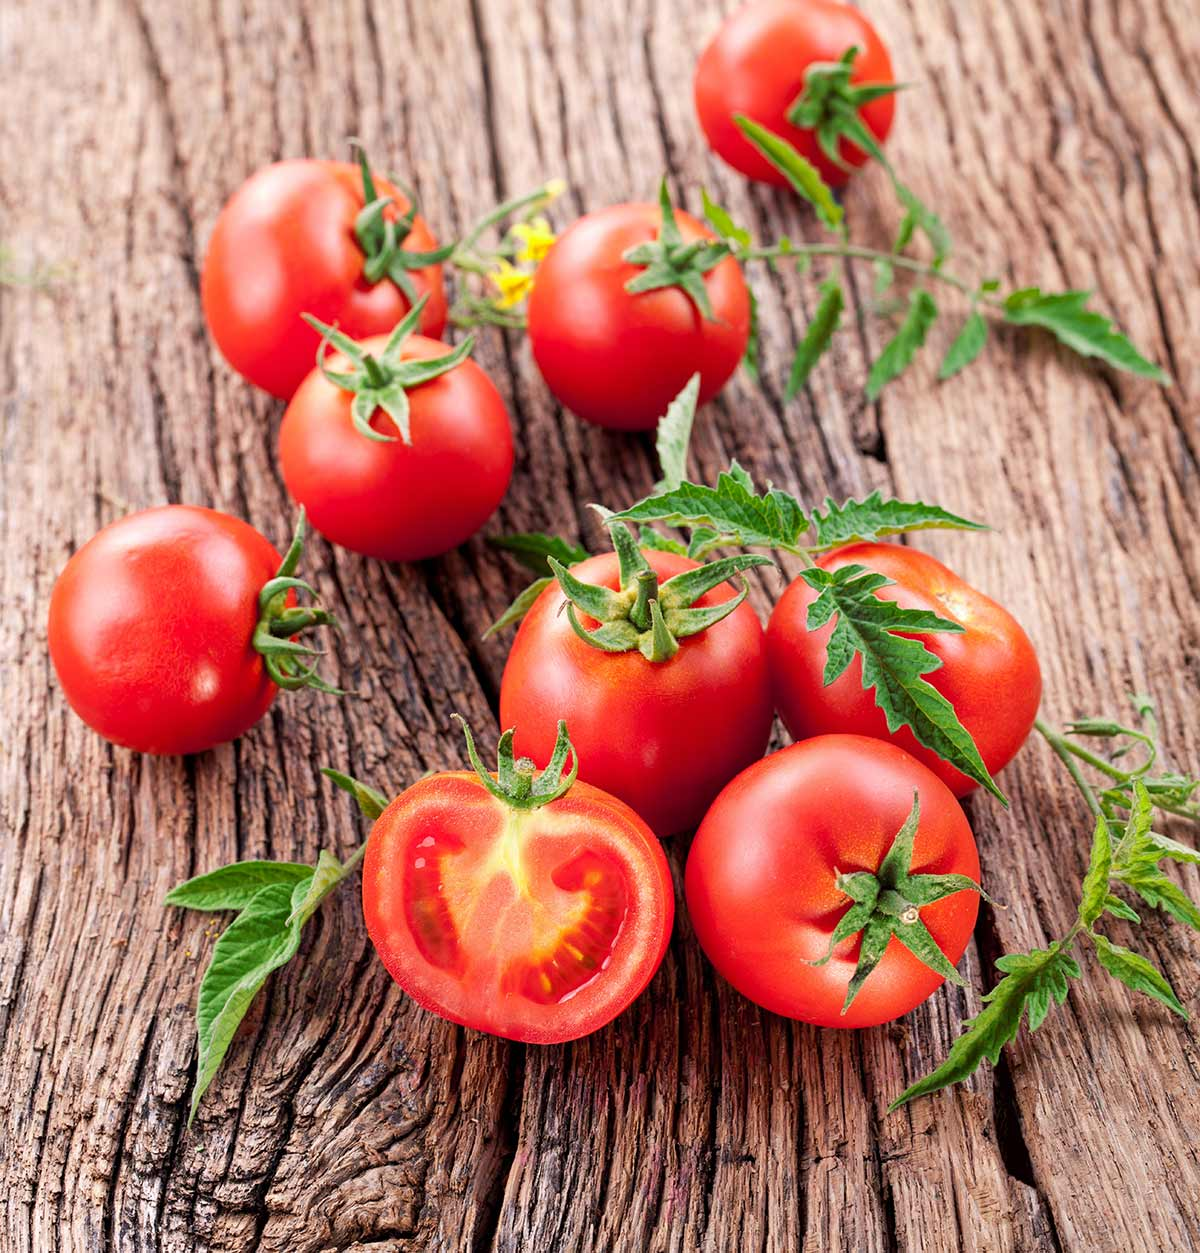 Organic Tomatoes for Juice1